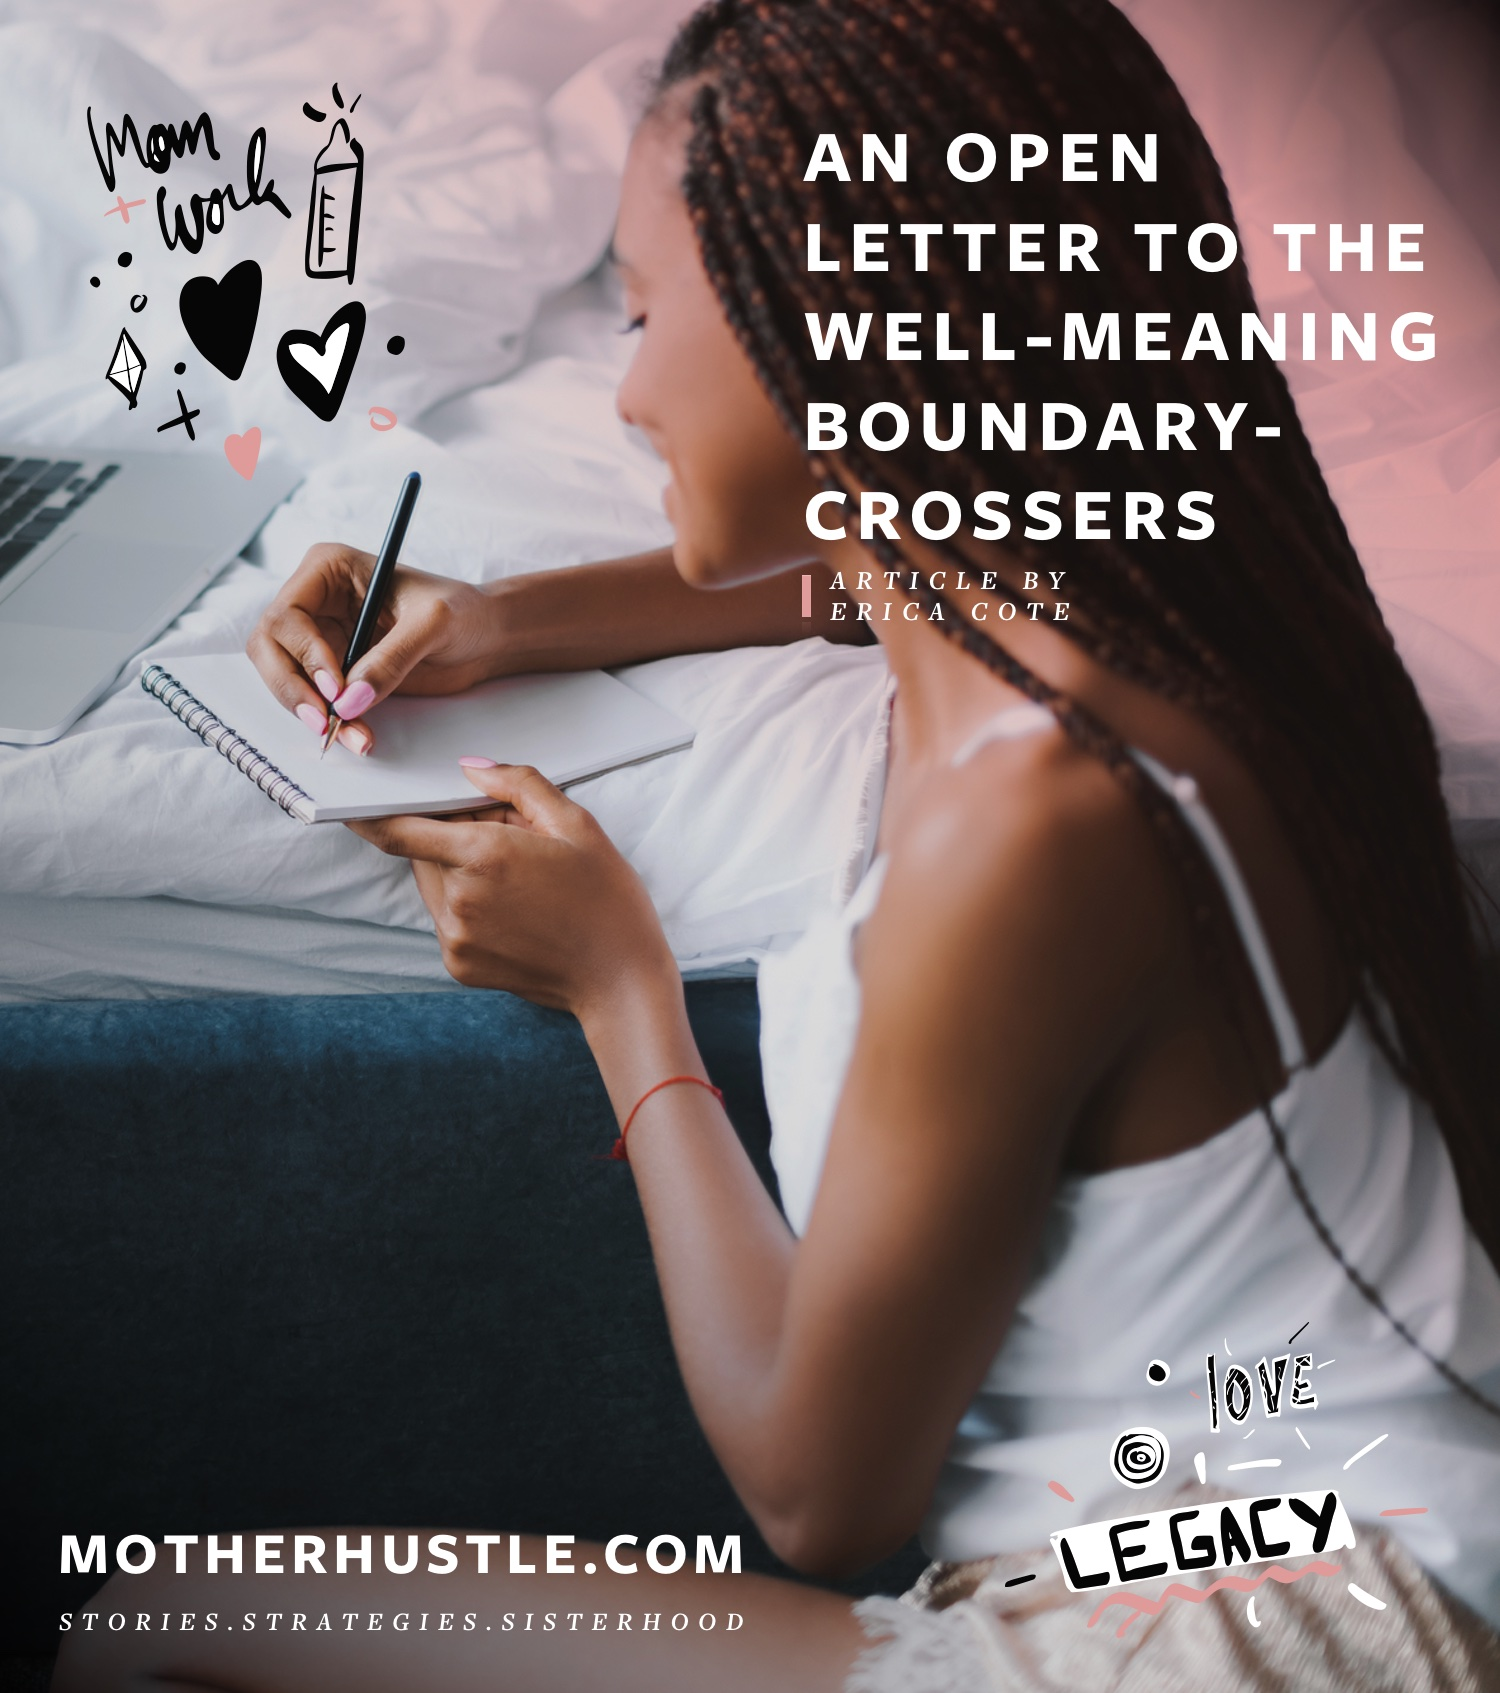 An Open Letter To The Well-Meaning Boundary-Crossers - BY Erica Cote for MotherHustle